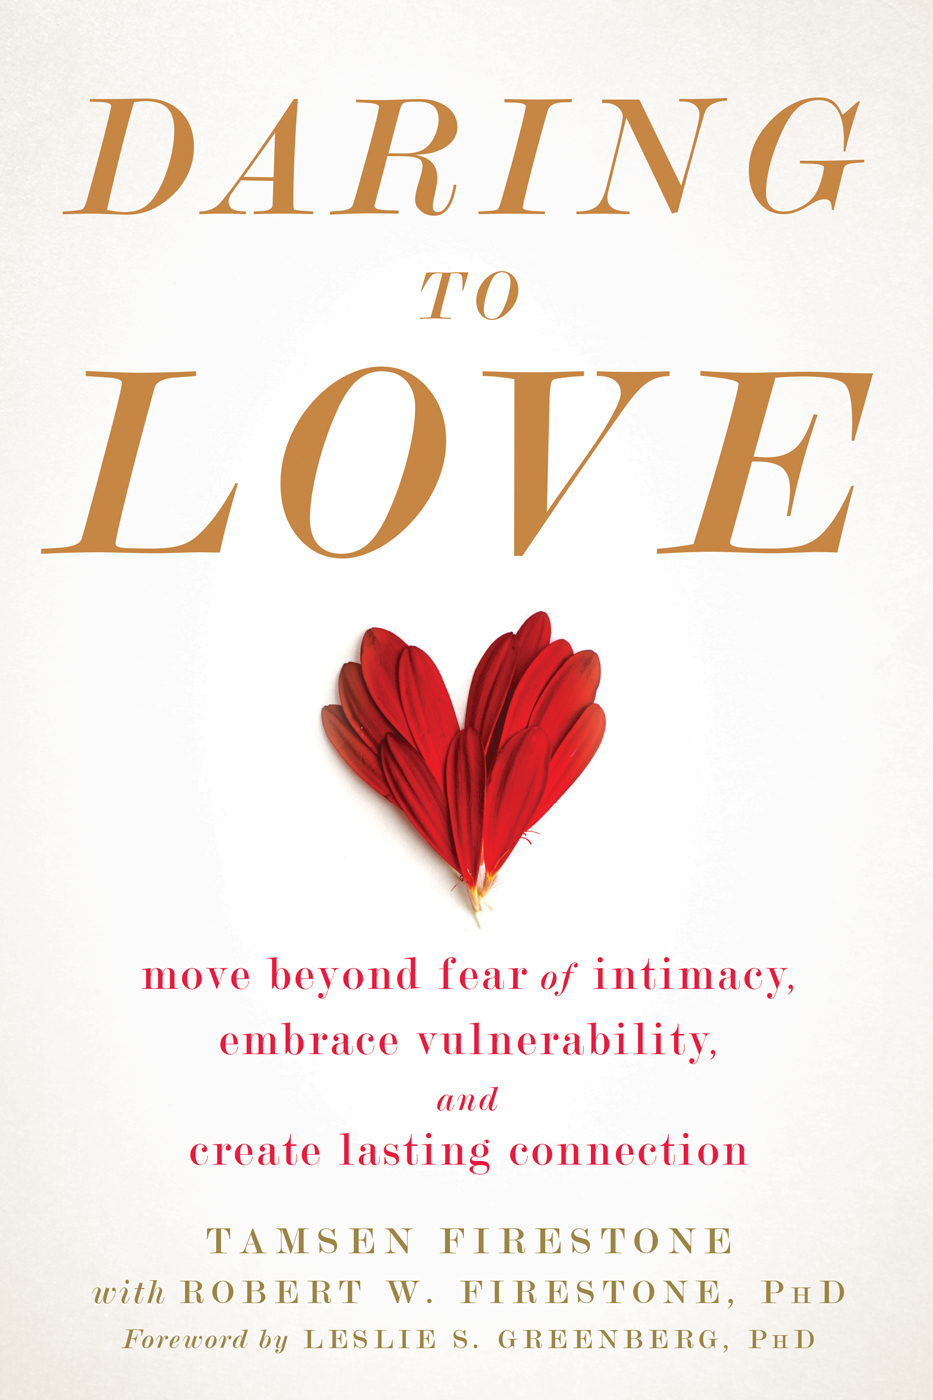 Daring to Love Move Beyond Fear of Intimacy, Embrace Vulnerability, and Create Lasting Connection